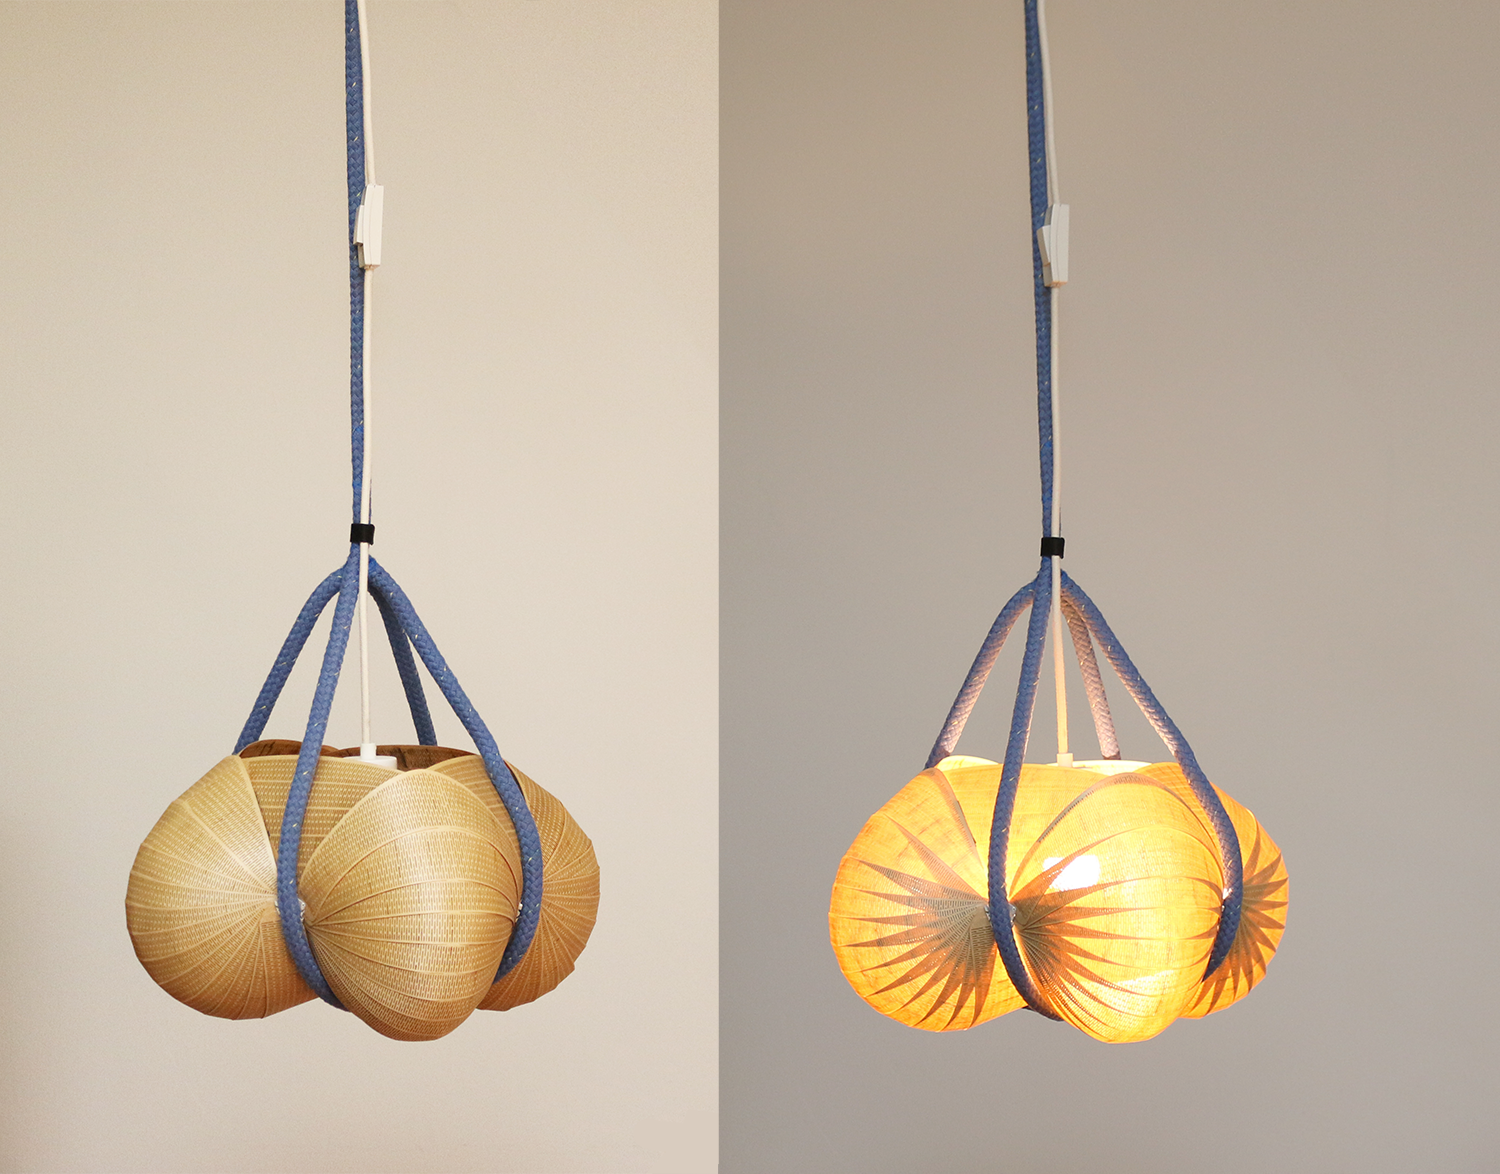 Pallokas with and without light.